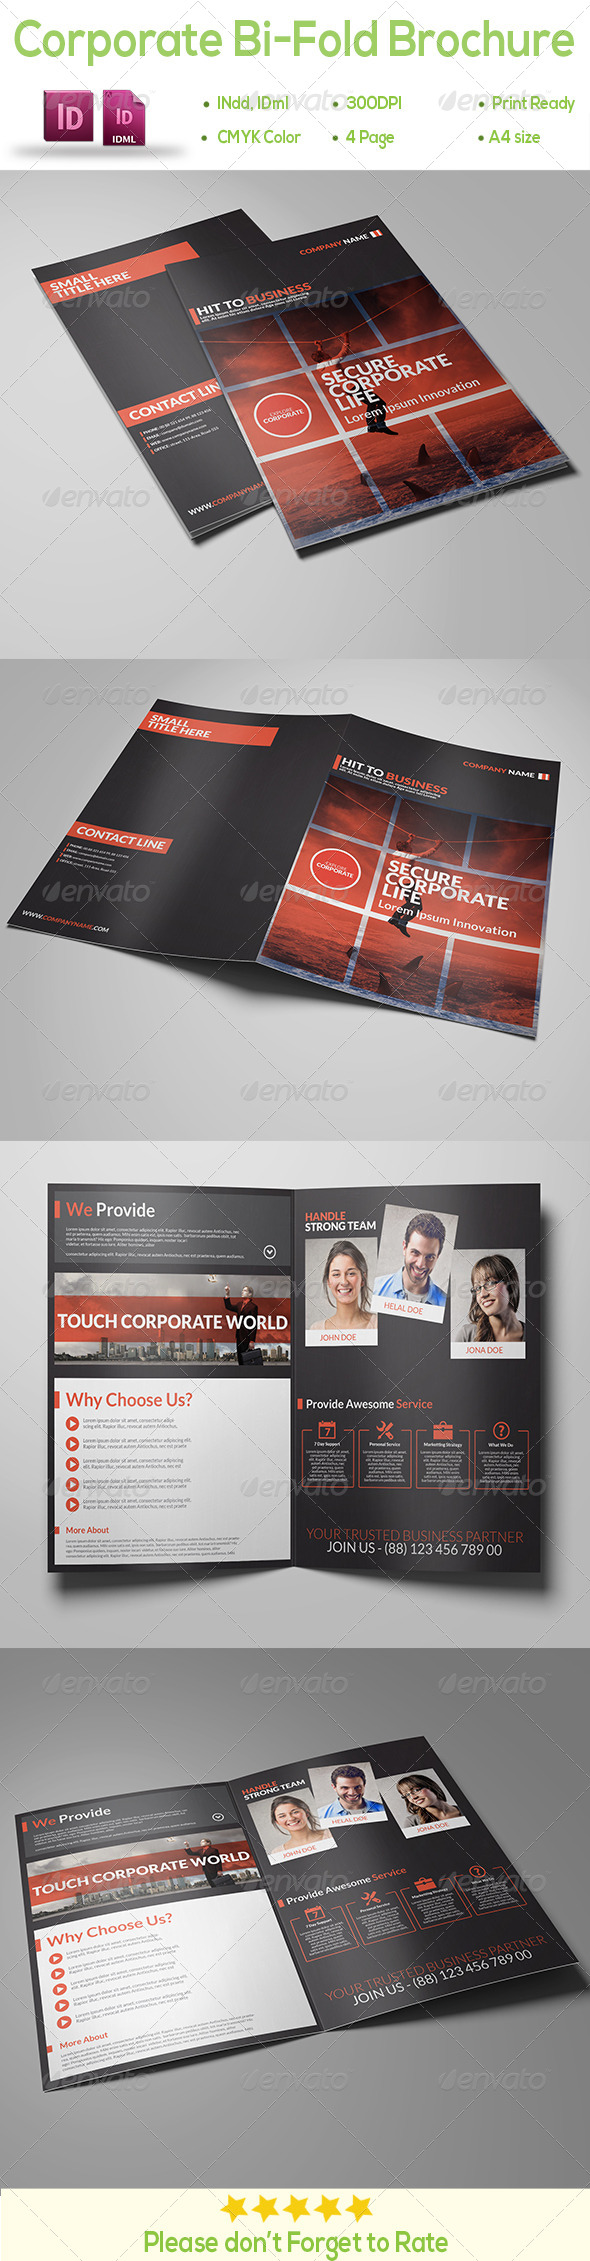 GraphicRiver Corporate Bi-Fold Brochure 8718100